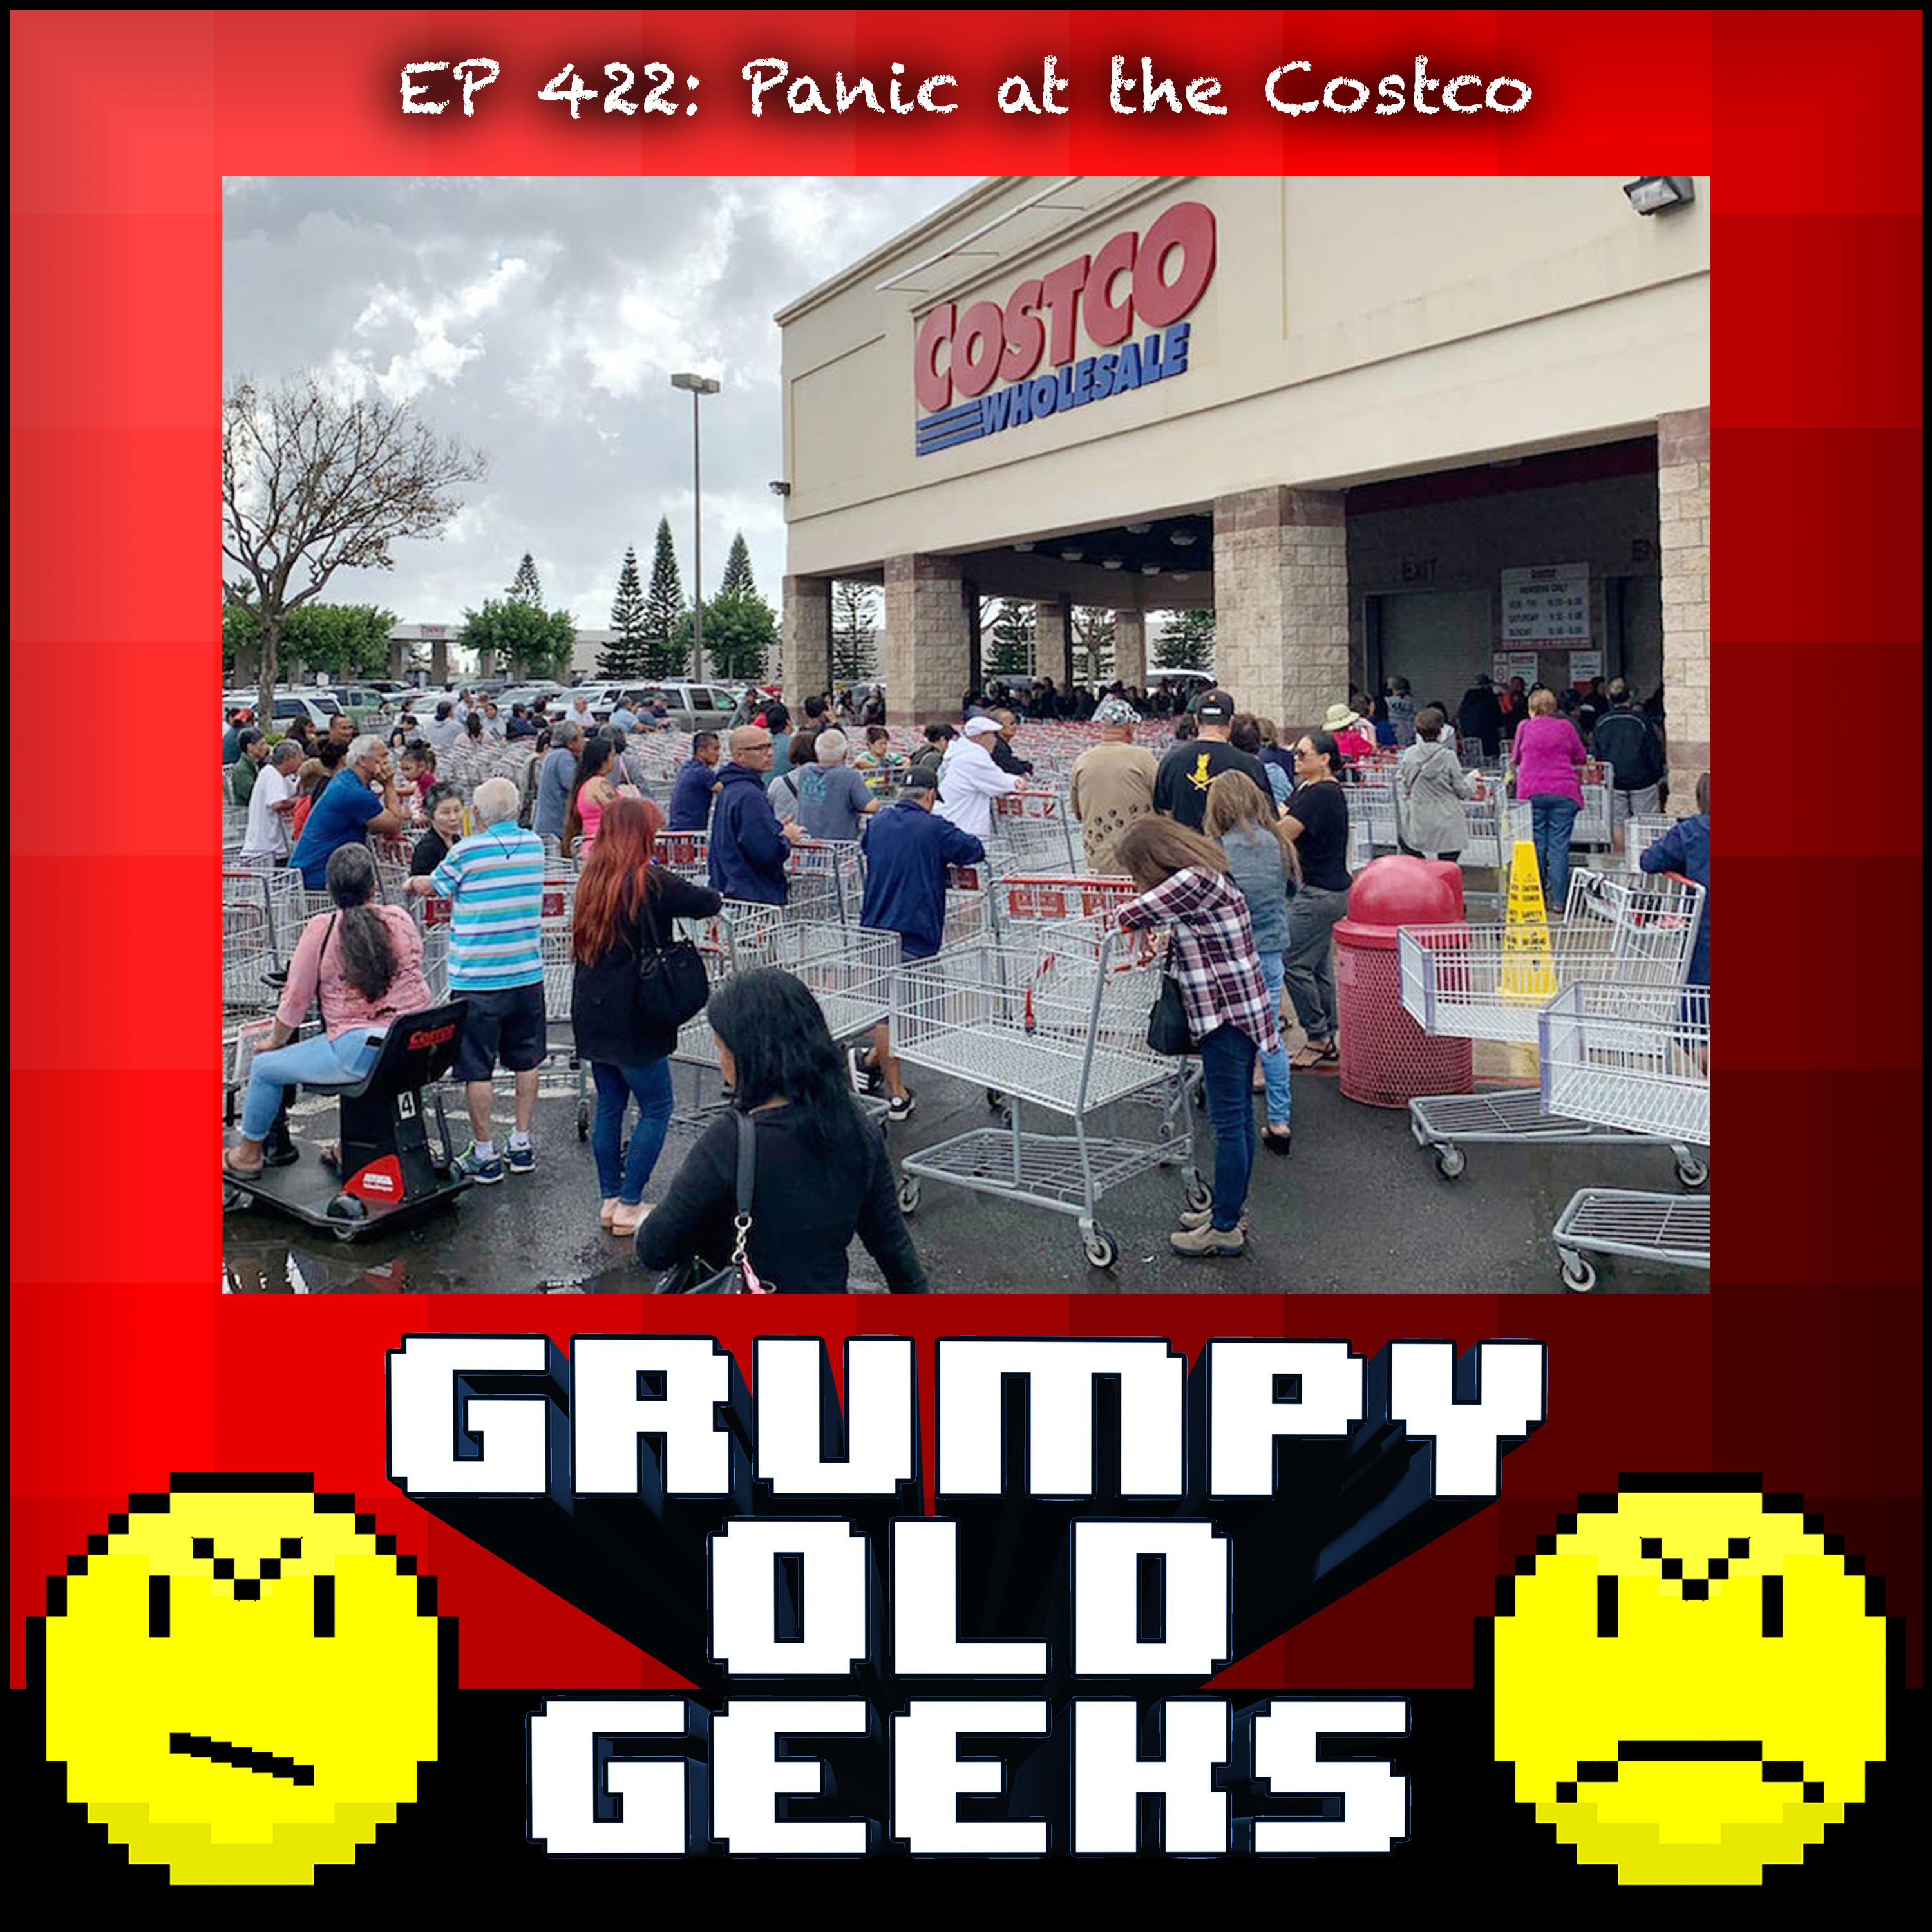 422: Panic at the Costco